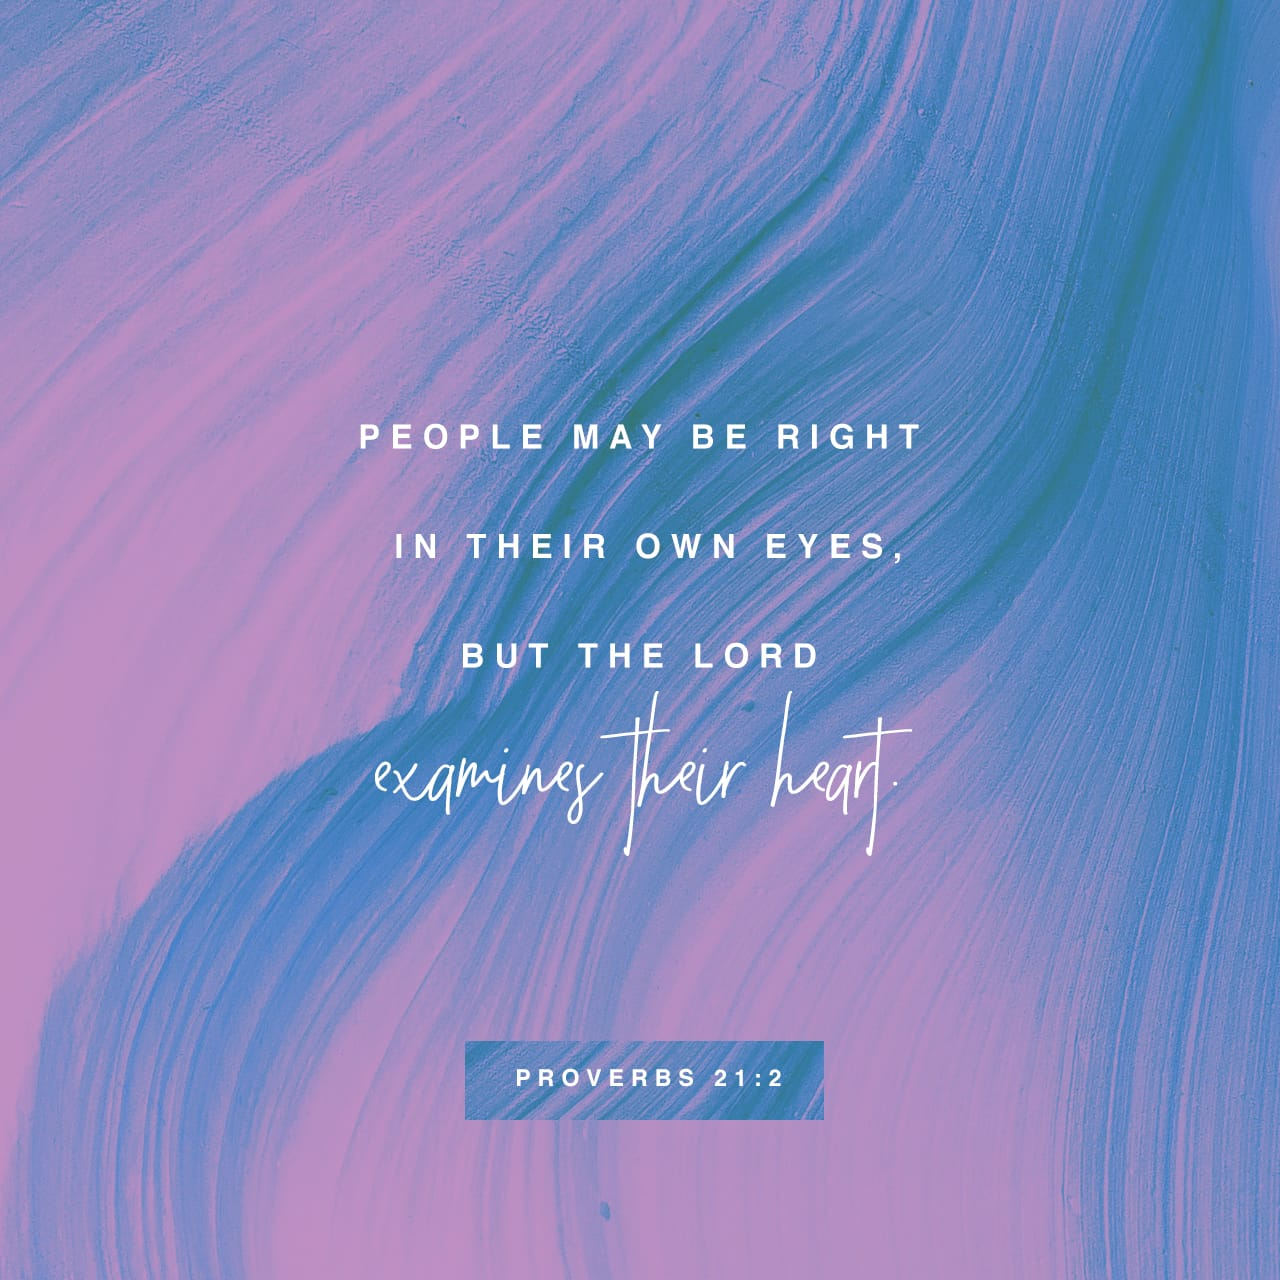 Proverbs 21:2 A person may think their own ways are right, but the LORD weighs the heart. | New International Version (NIV)